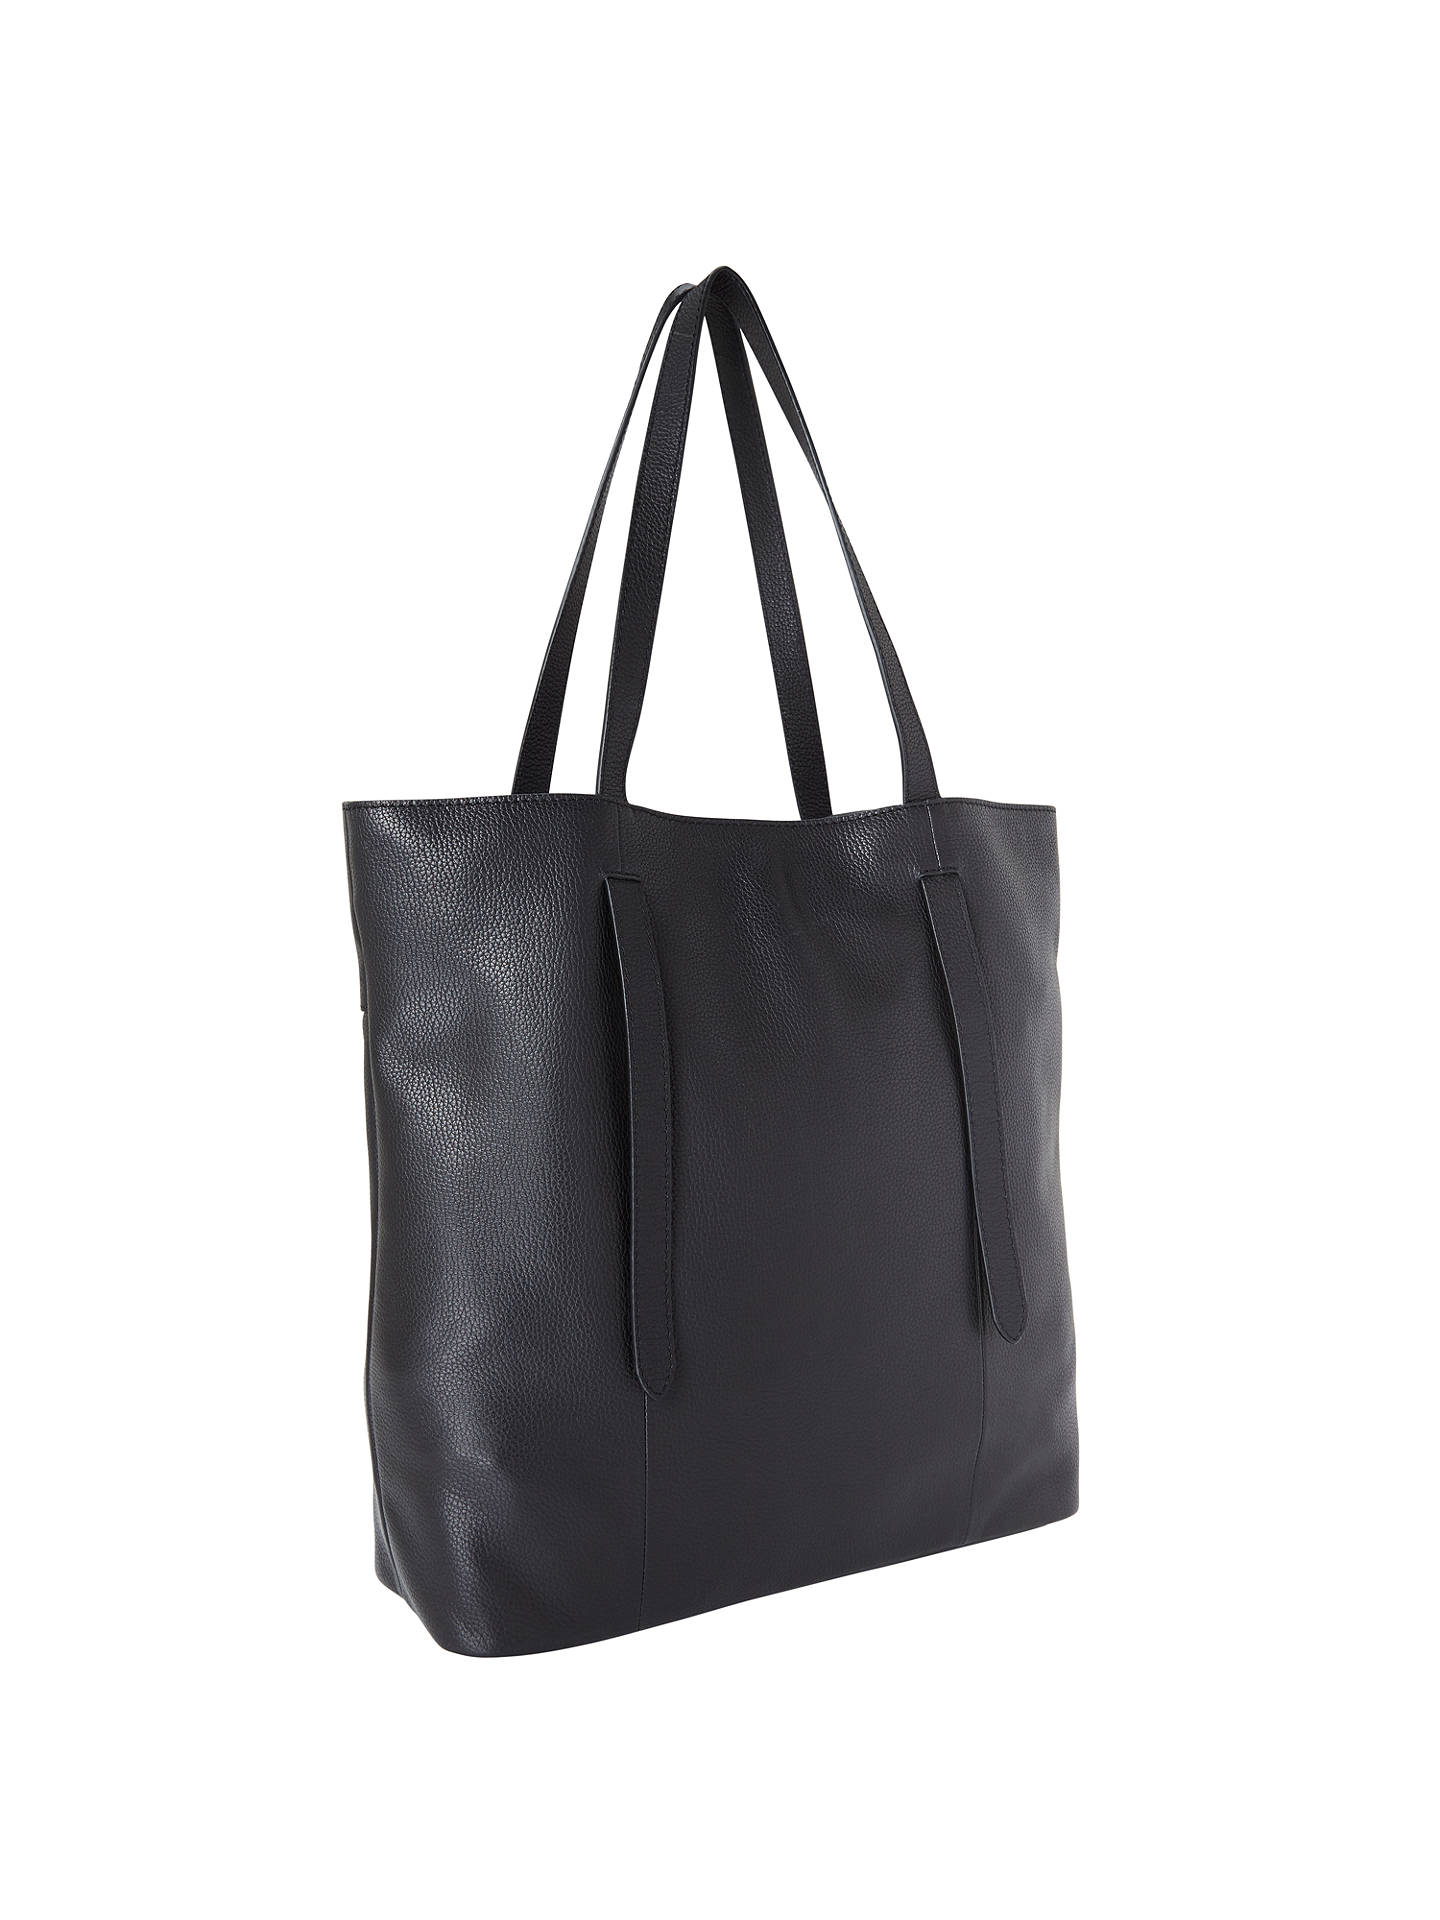 John Lewis Partners Cecilia Leather North South Tote Bag